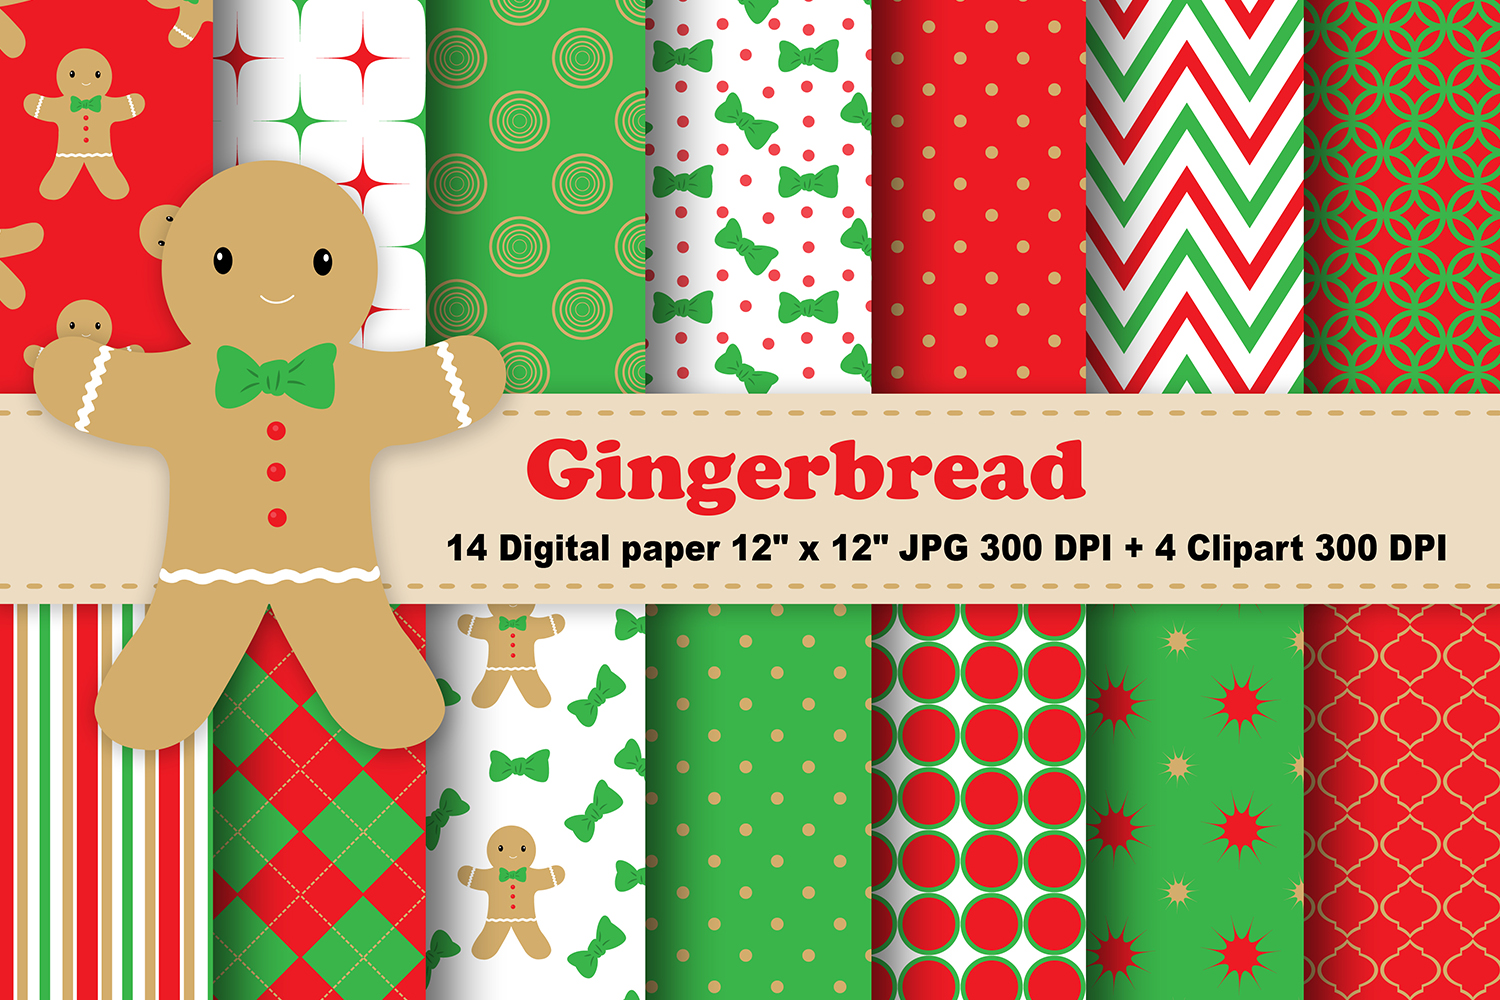 Download Free Gingerbread Digital Paper Graphic By Cosmosfineart Creative for Cricut Explore, Silhouette and other cutting machines.